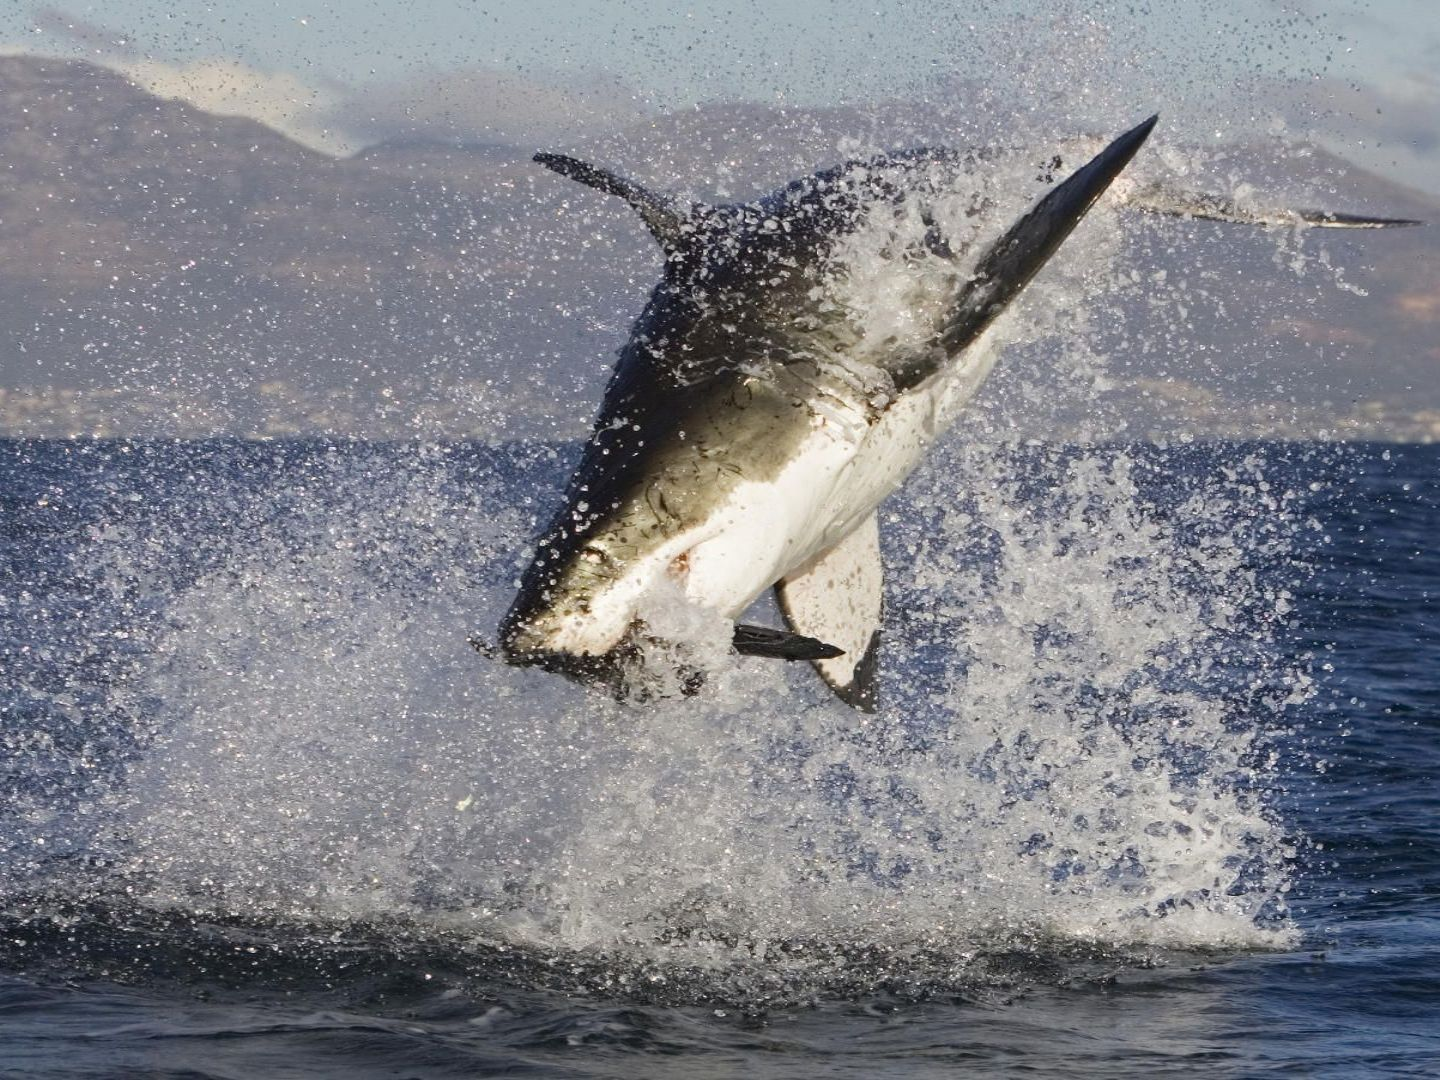 Shark water White sharks, Great white shark attack